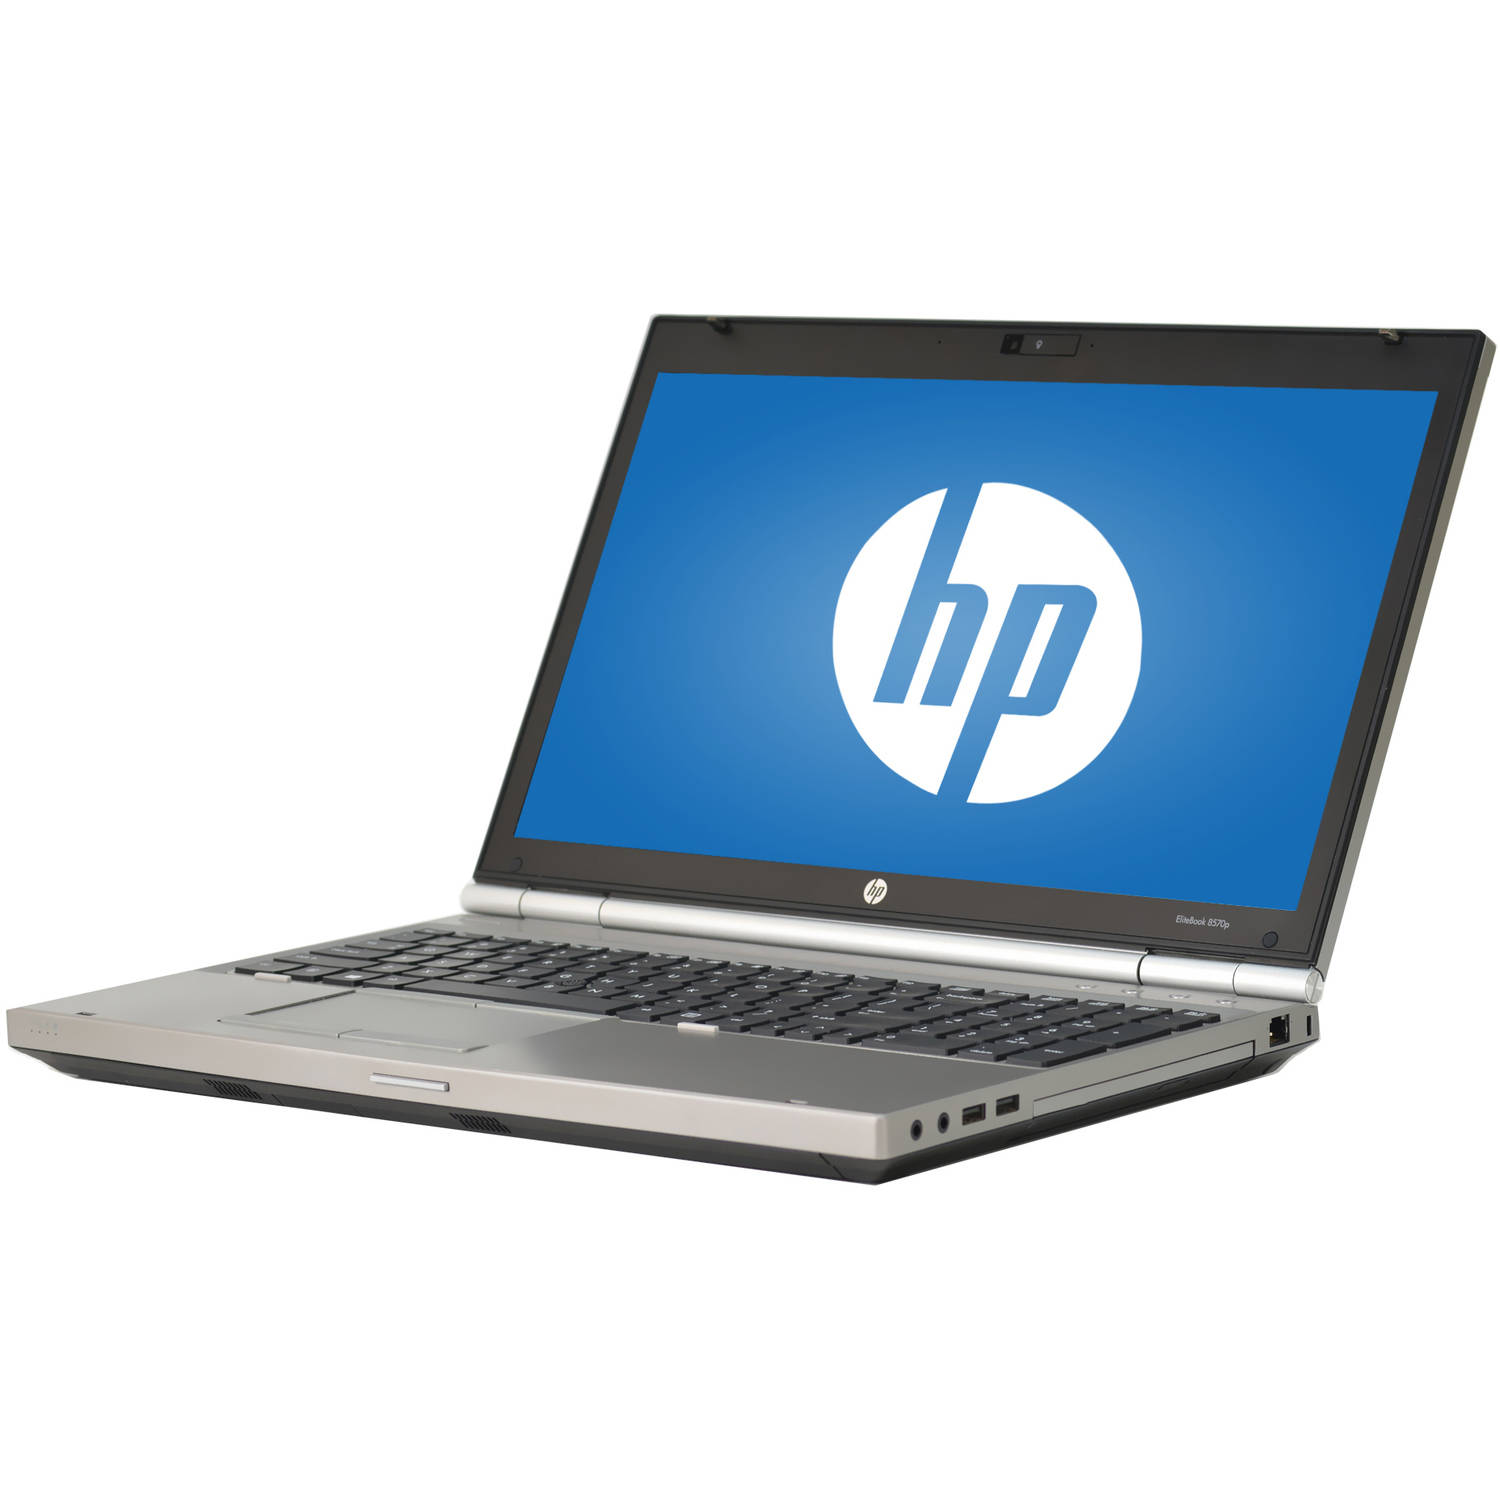 "Refurbished HP 15.6"" EliteBook 8570P Laptop PC with Intel Core i7-3720QM Processor, 16GB Memory, 750GB Hard Drive and Windows 7 Professional"